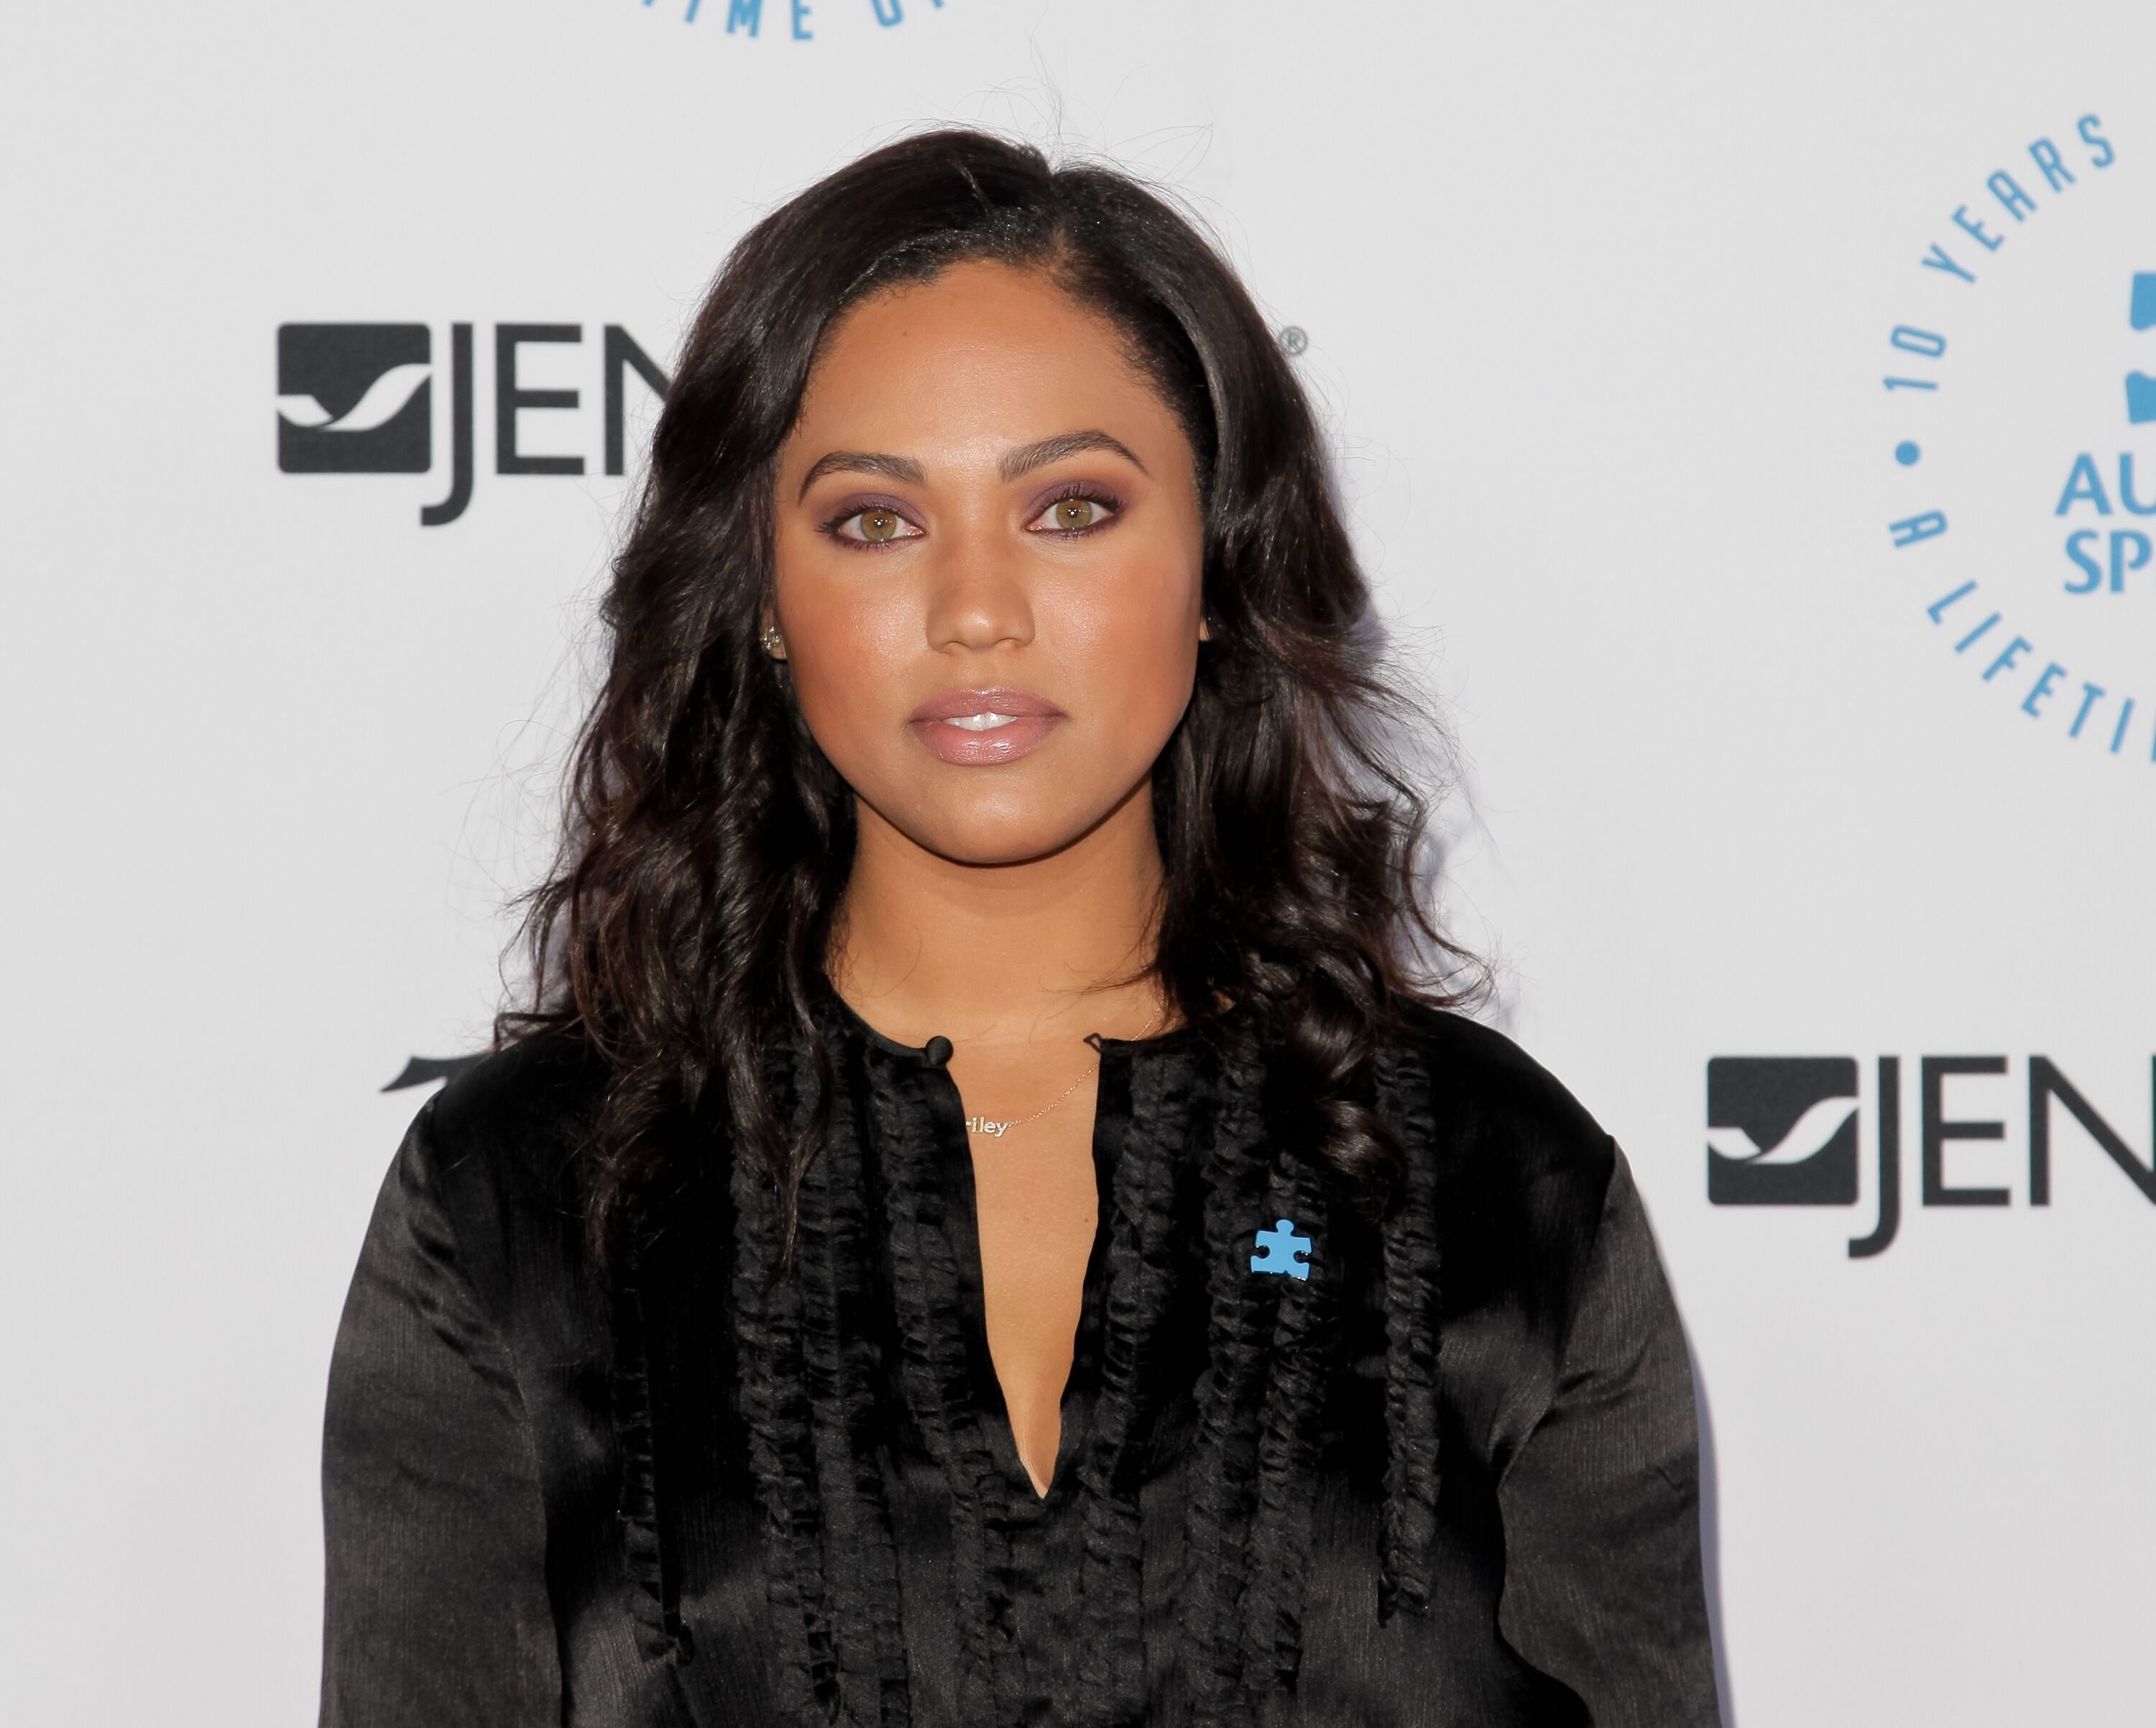 Ayesha Curry attends the Autism Speaks to Los Angeles Celebrity Chef Gala at Barker Hangar on October 8, 2015 in Santa Monica, California | Photo: Getty Images